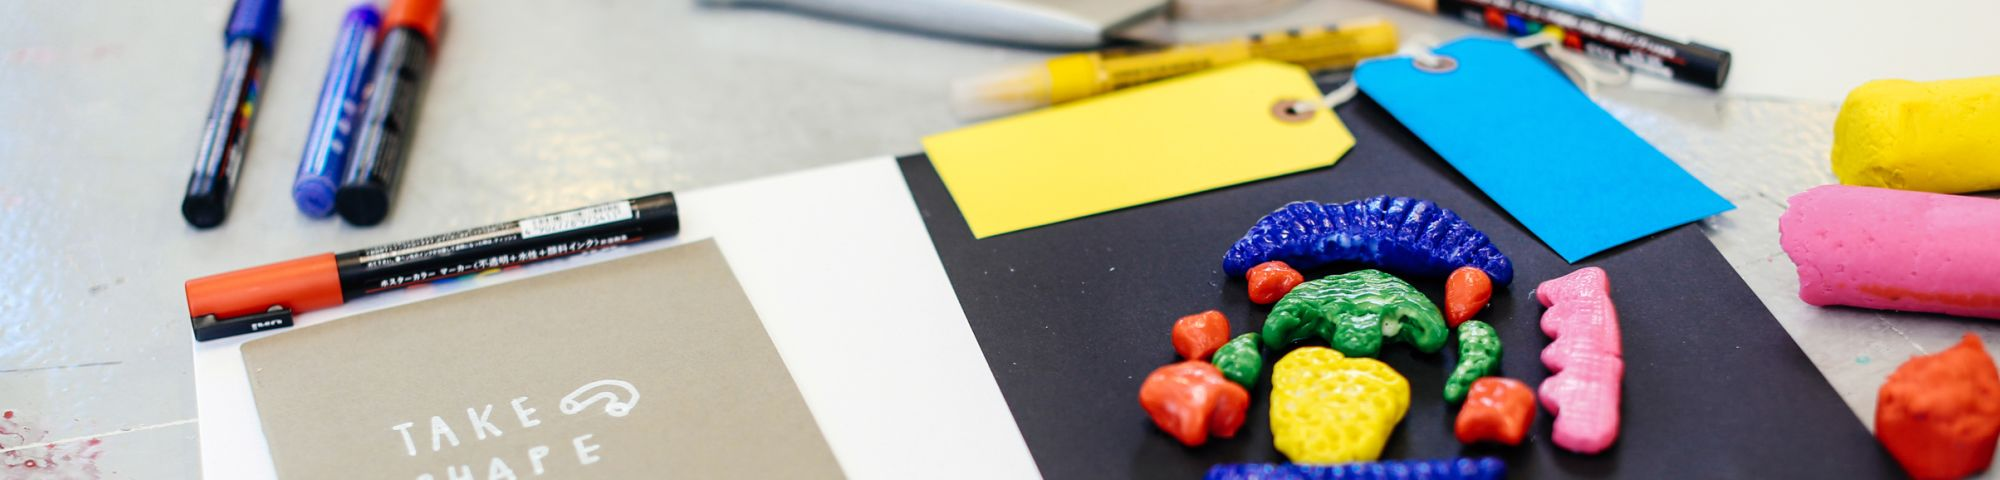 Moulded pieces of colourful clay on a piece of paper with pens and labels next to it